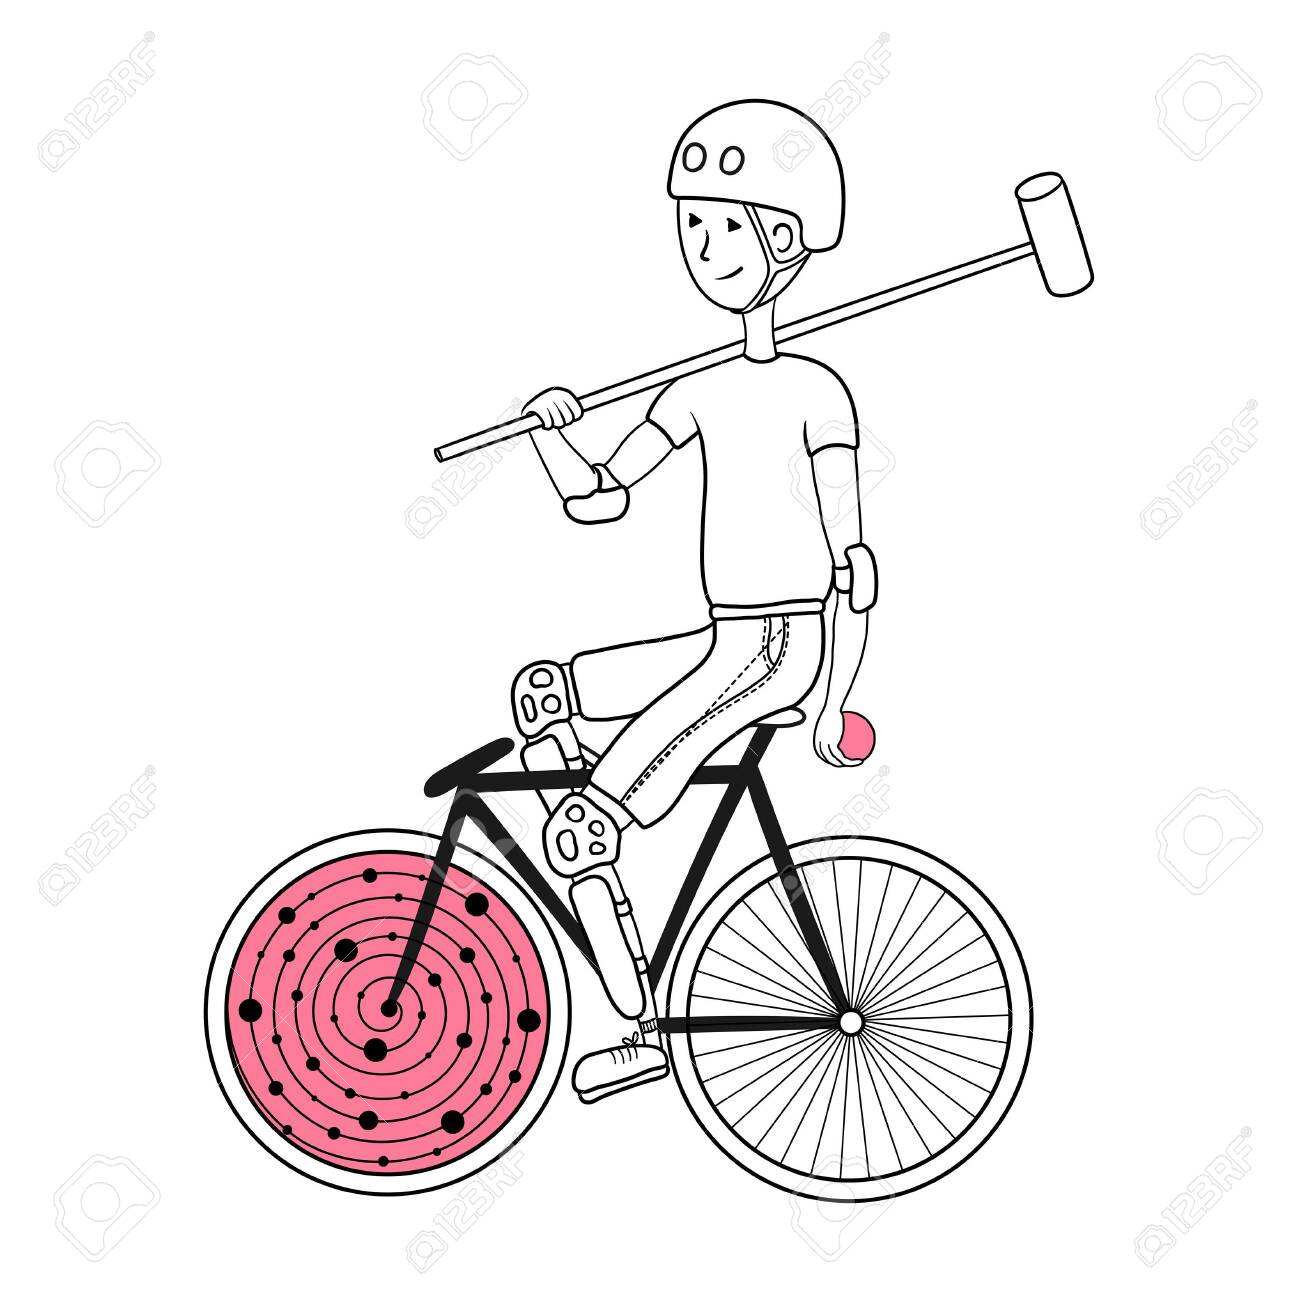 Polo bike player with bat and ball.. Can be used as a print on a t-shirt, coloring page for adults. - 149166433